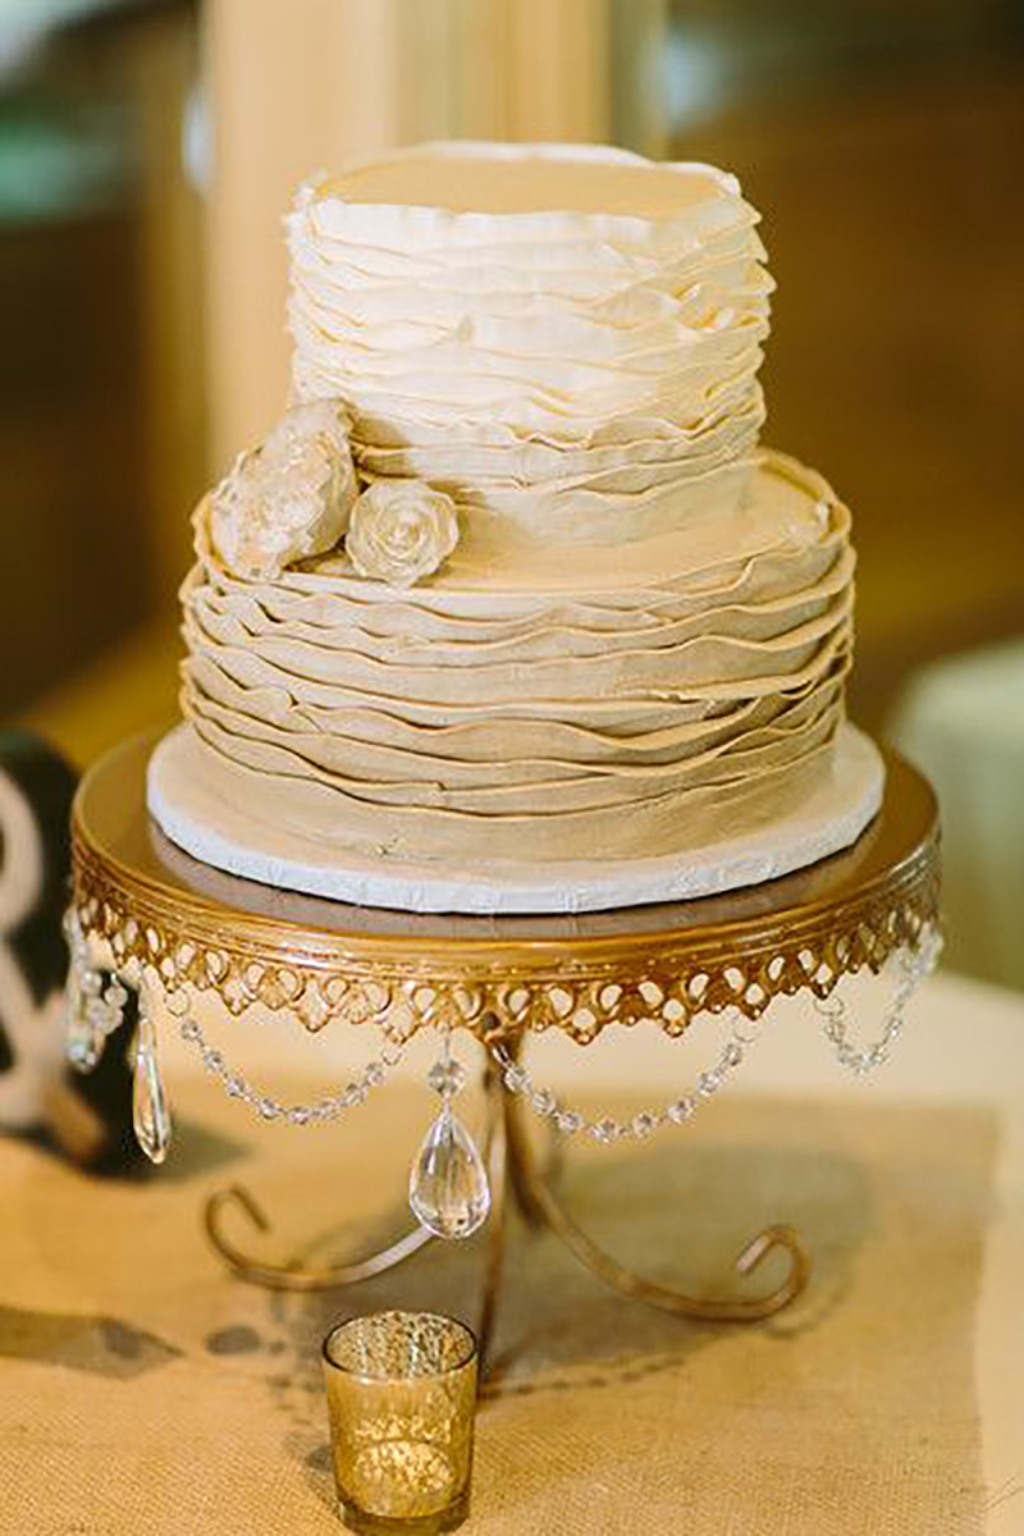 Vintage Ombre Ruffled Wedding Cake on Chandelier Cake Stand